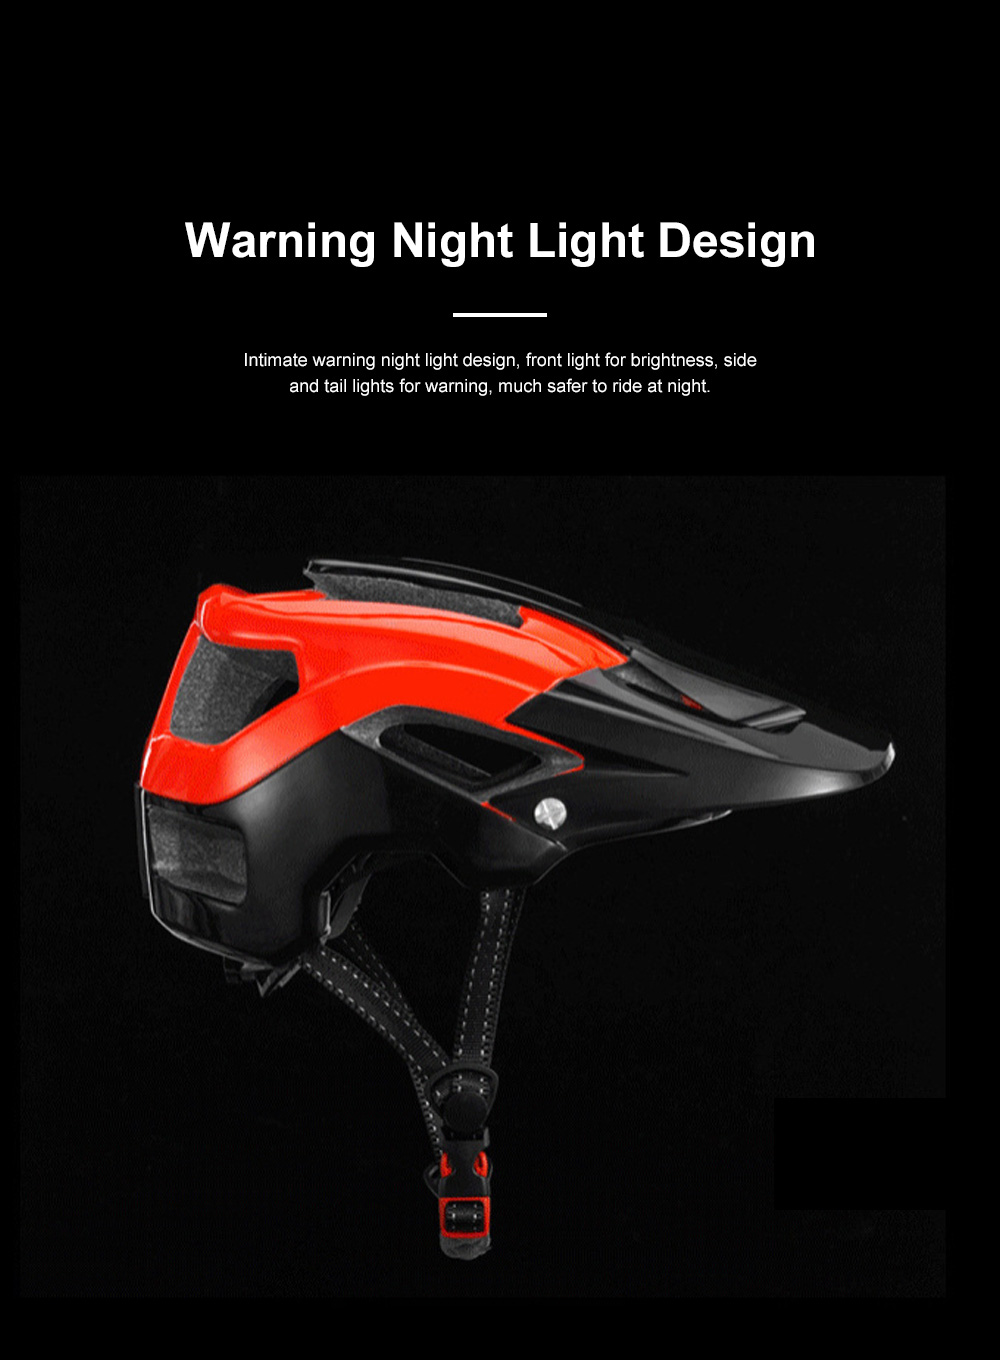 ROCKBROS Shockproof Bike Helmet with Warning Night Light Breathable Bike Cycle Helmets for Adults with Adjustable Headlight 2